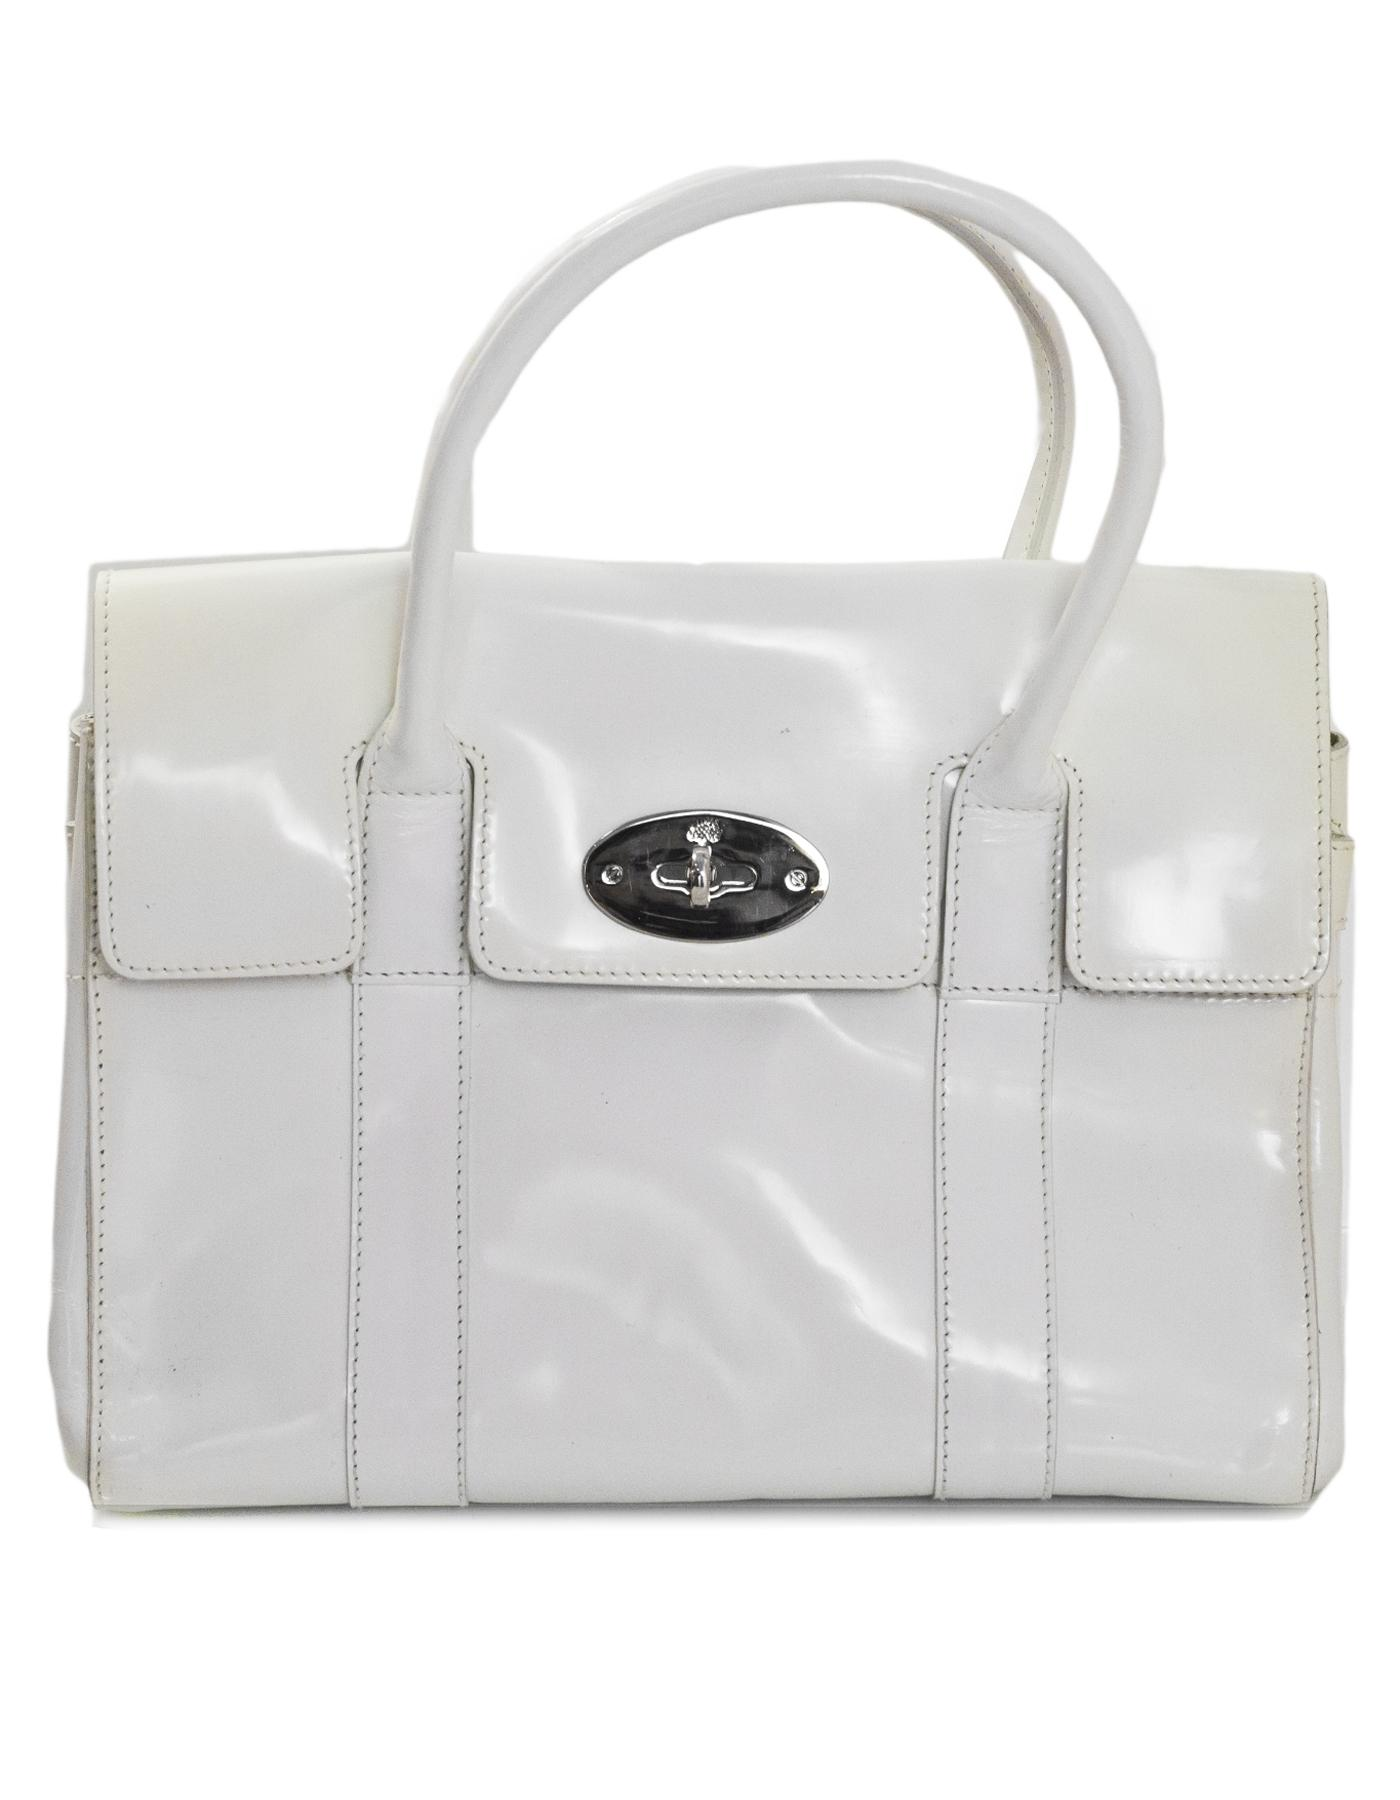 Mulberry White Patent Leather Small Bayswater Bag With Dust Bag 0kLVY5ipWO